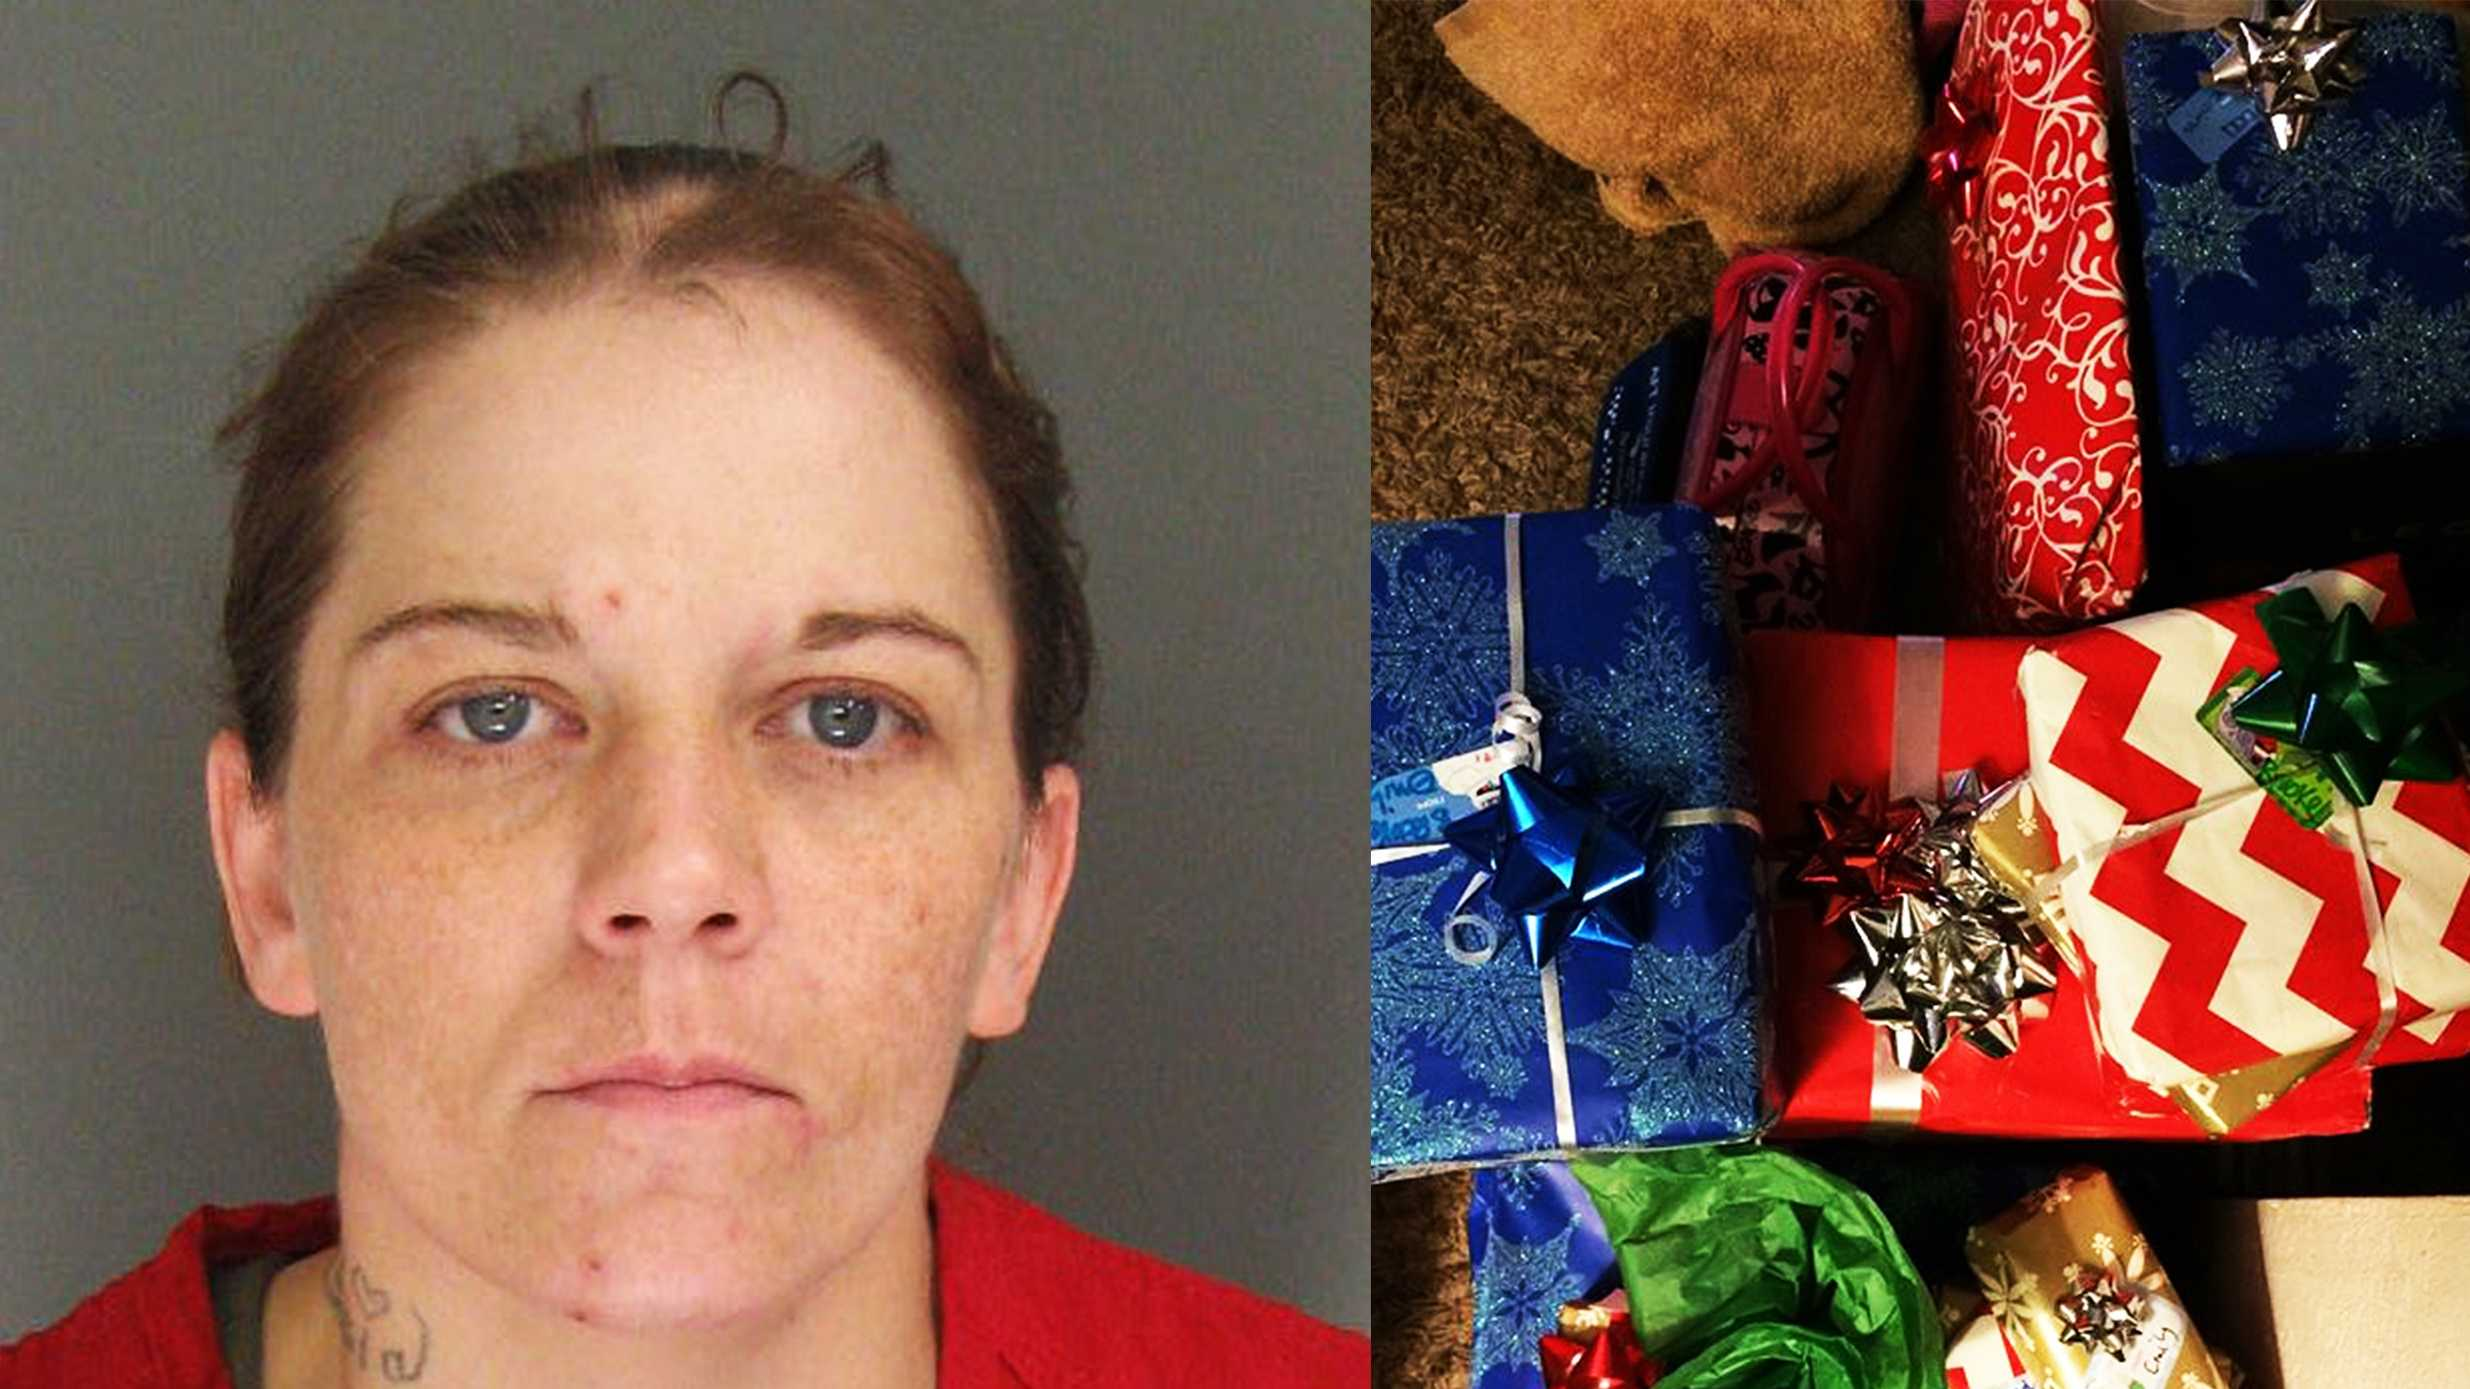 Emily Faye Duncan, left, and Christmas presents that deputies found in her house, right.